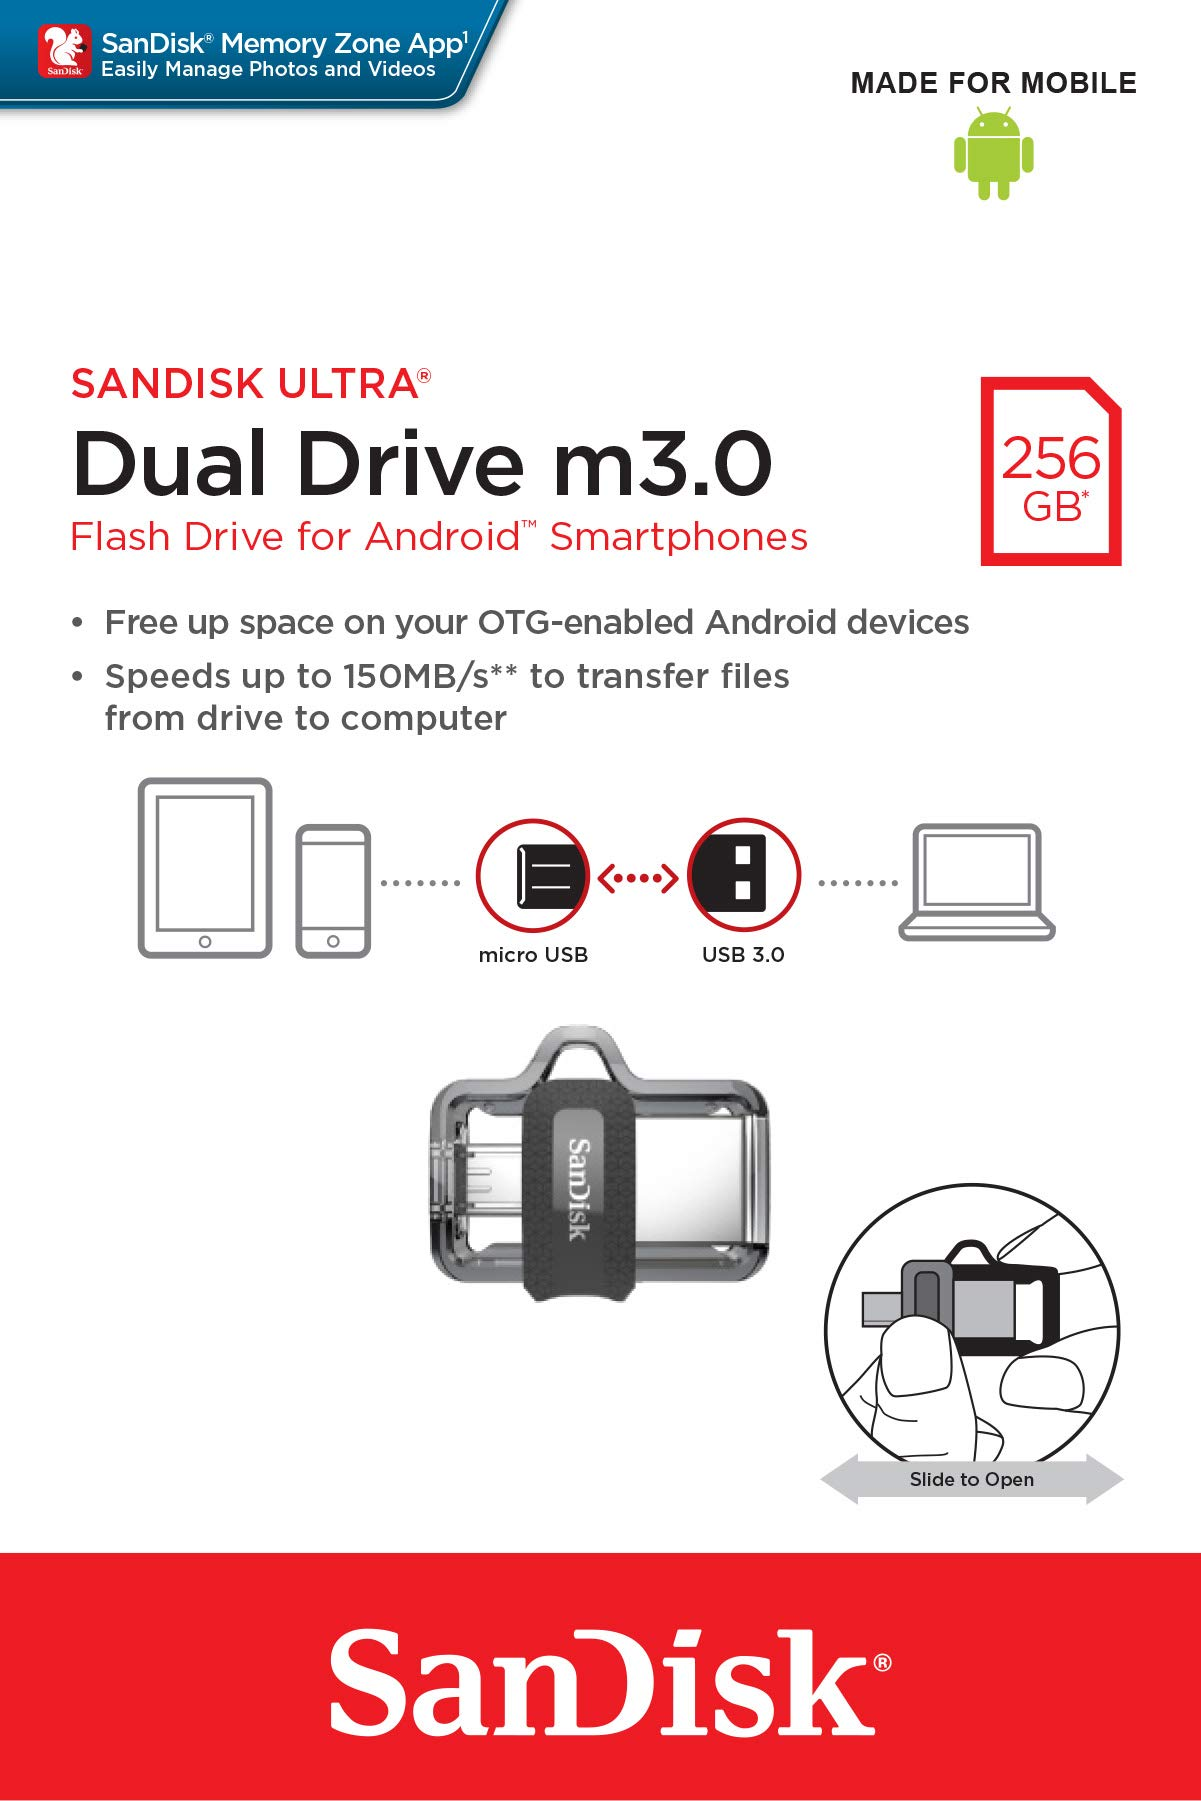 SanDisk 256GB Ultra Dual Drive m3.0 for Android Devices and Computers - microUSB, USB 3.0 - SDDD3-256G-G46 by SanDisk (Image #7)